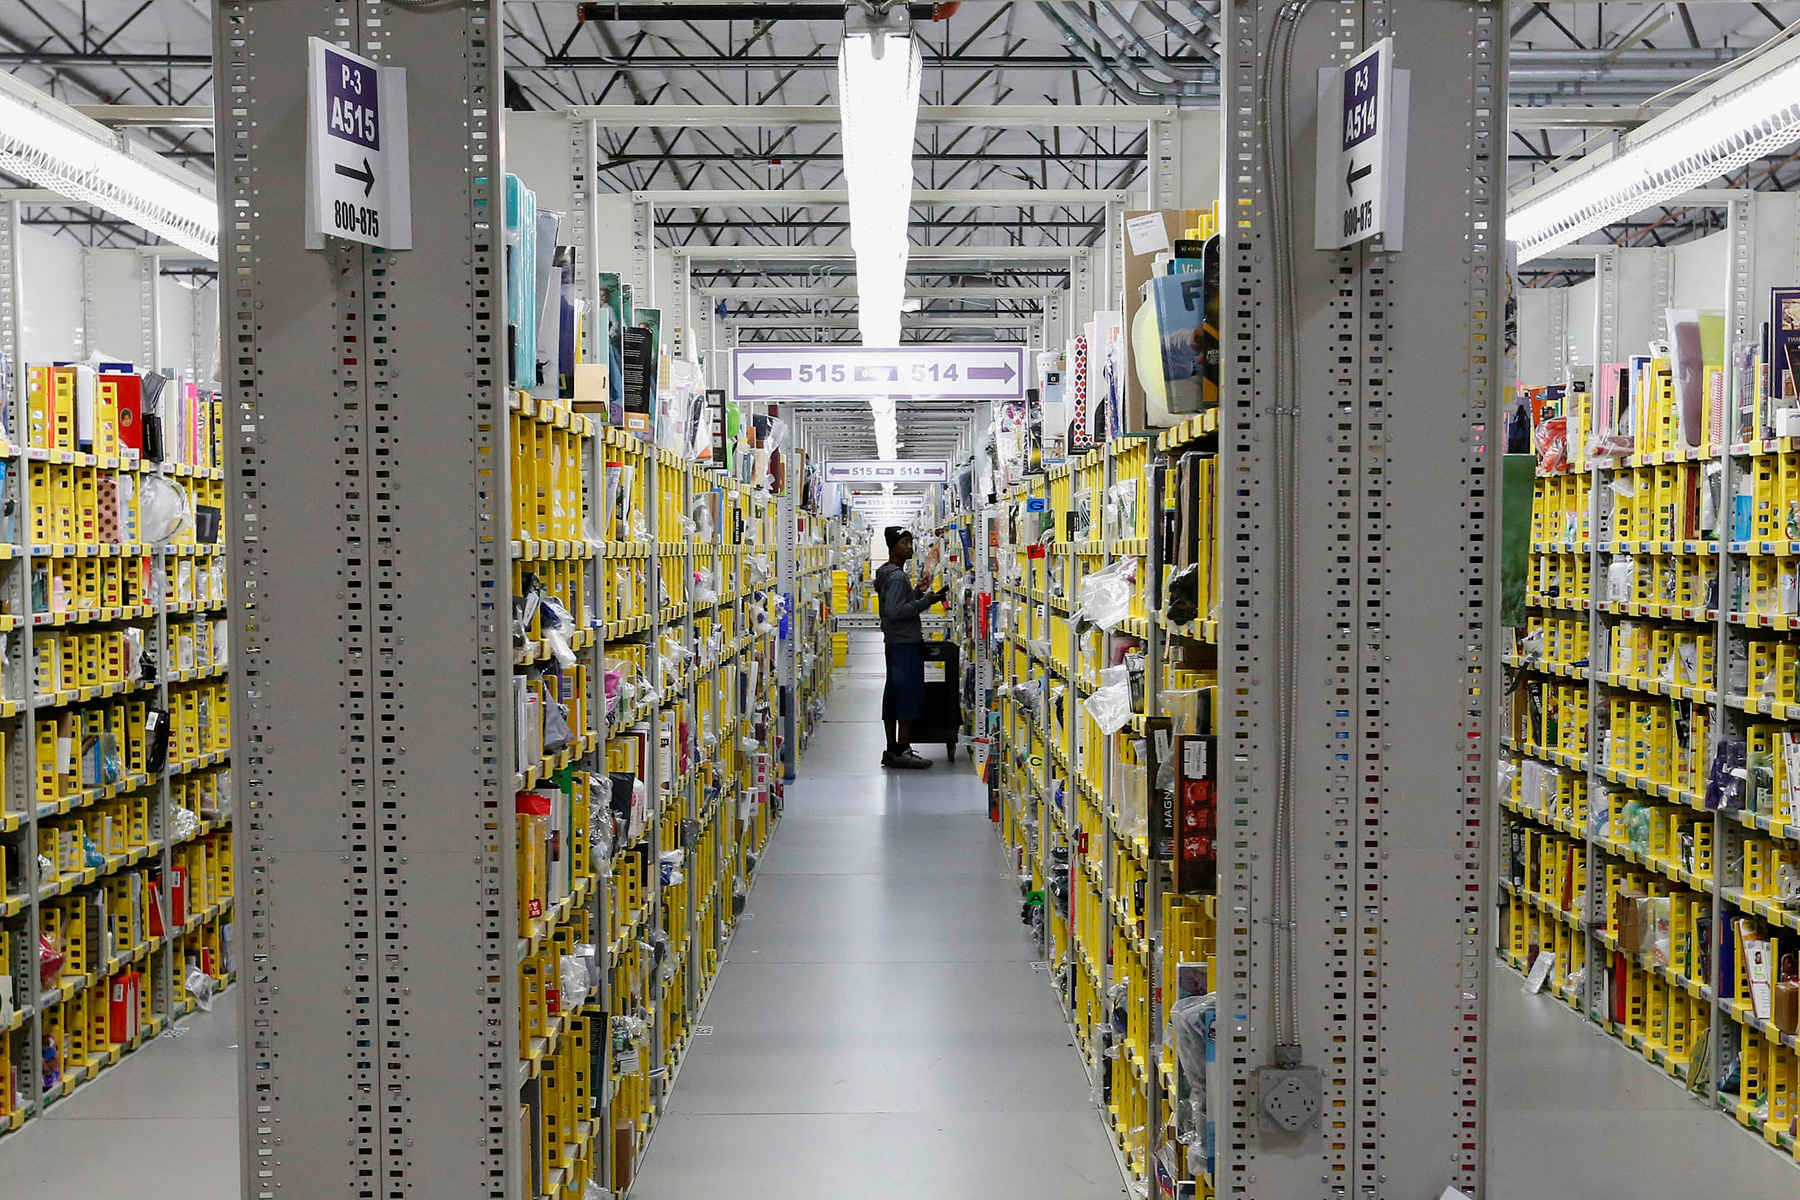 An Amazon.com employee stocks a shelf at an Amazon.com Fulfillment Center